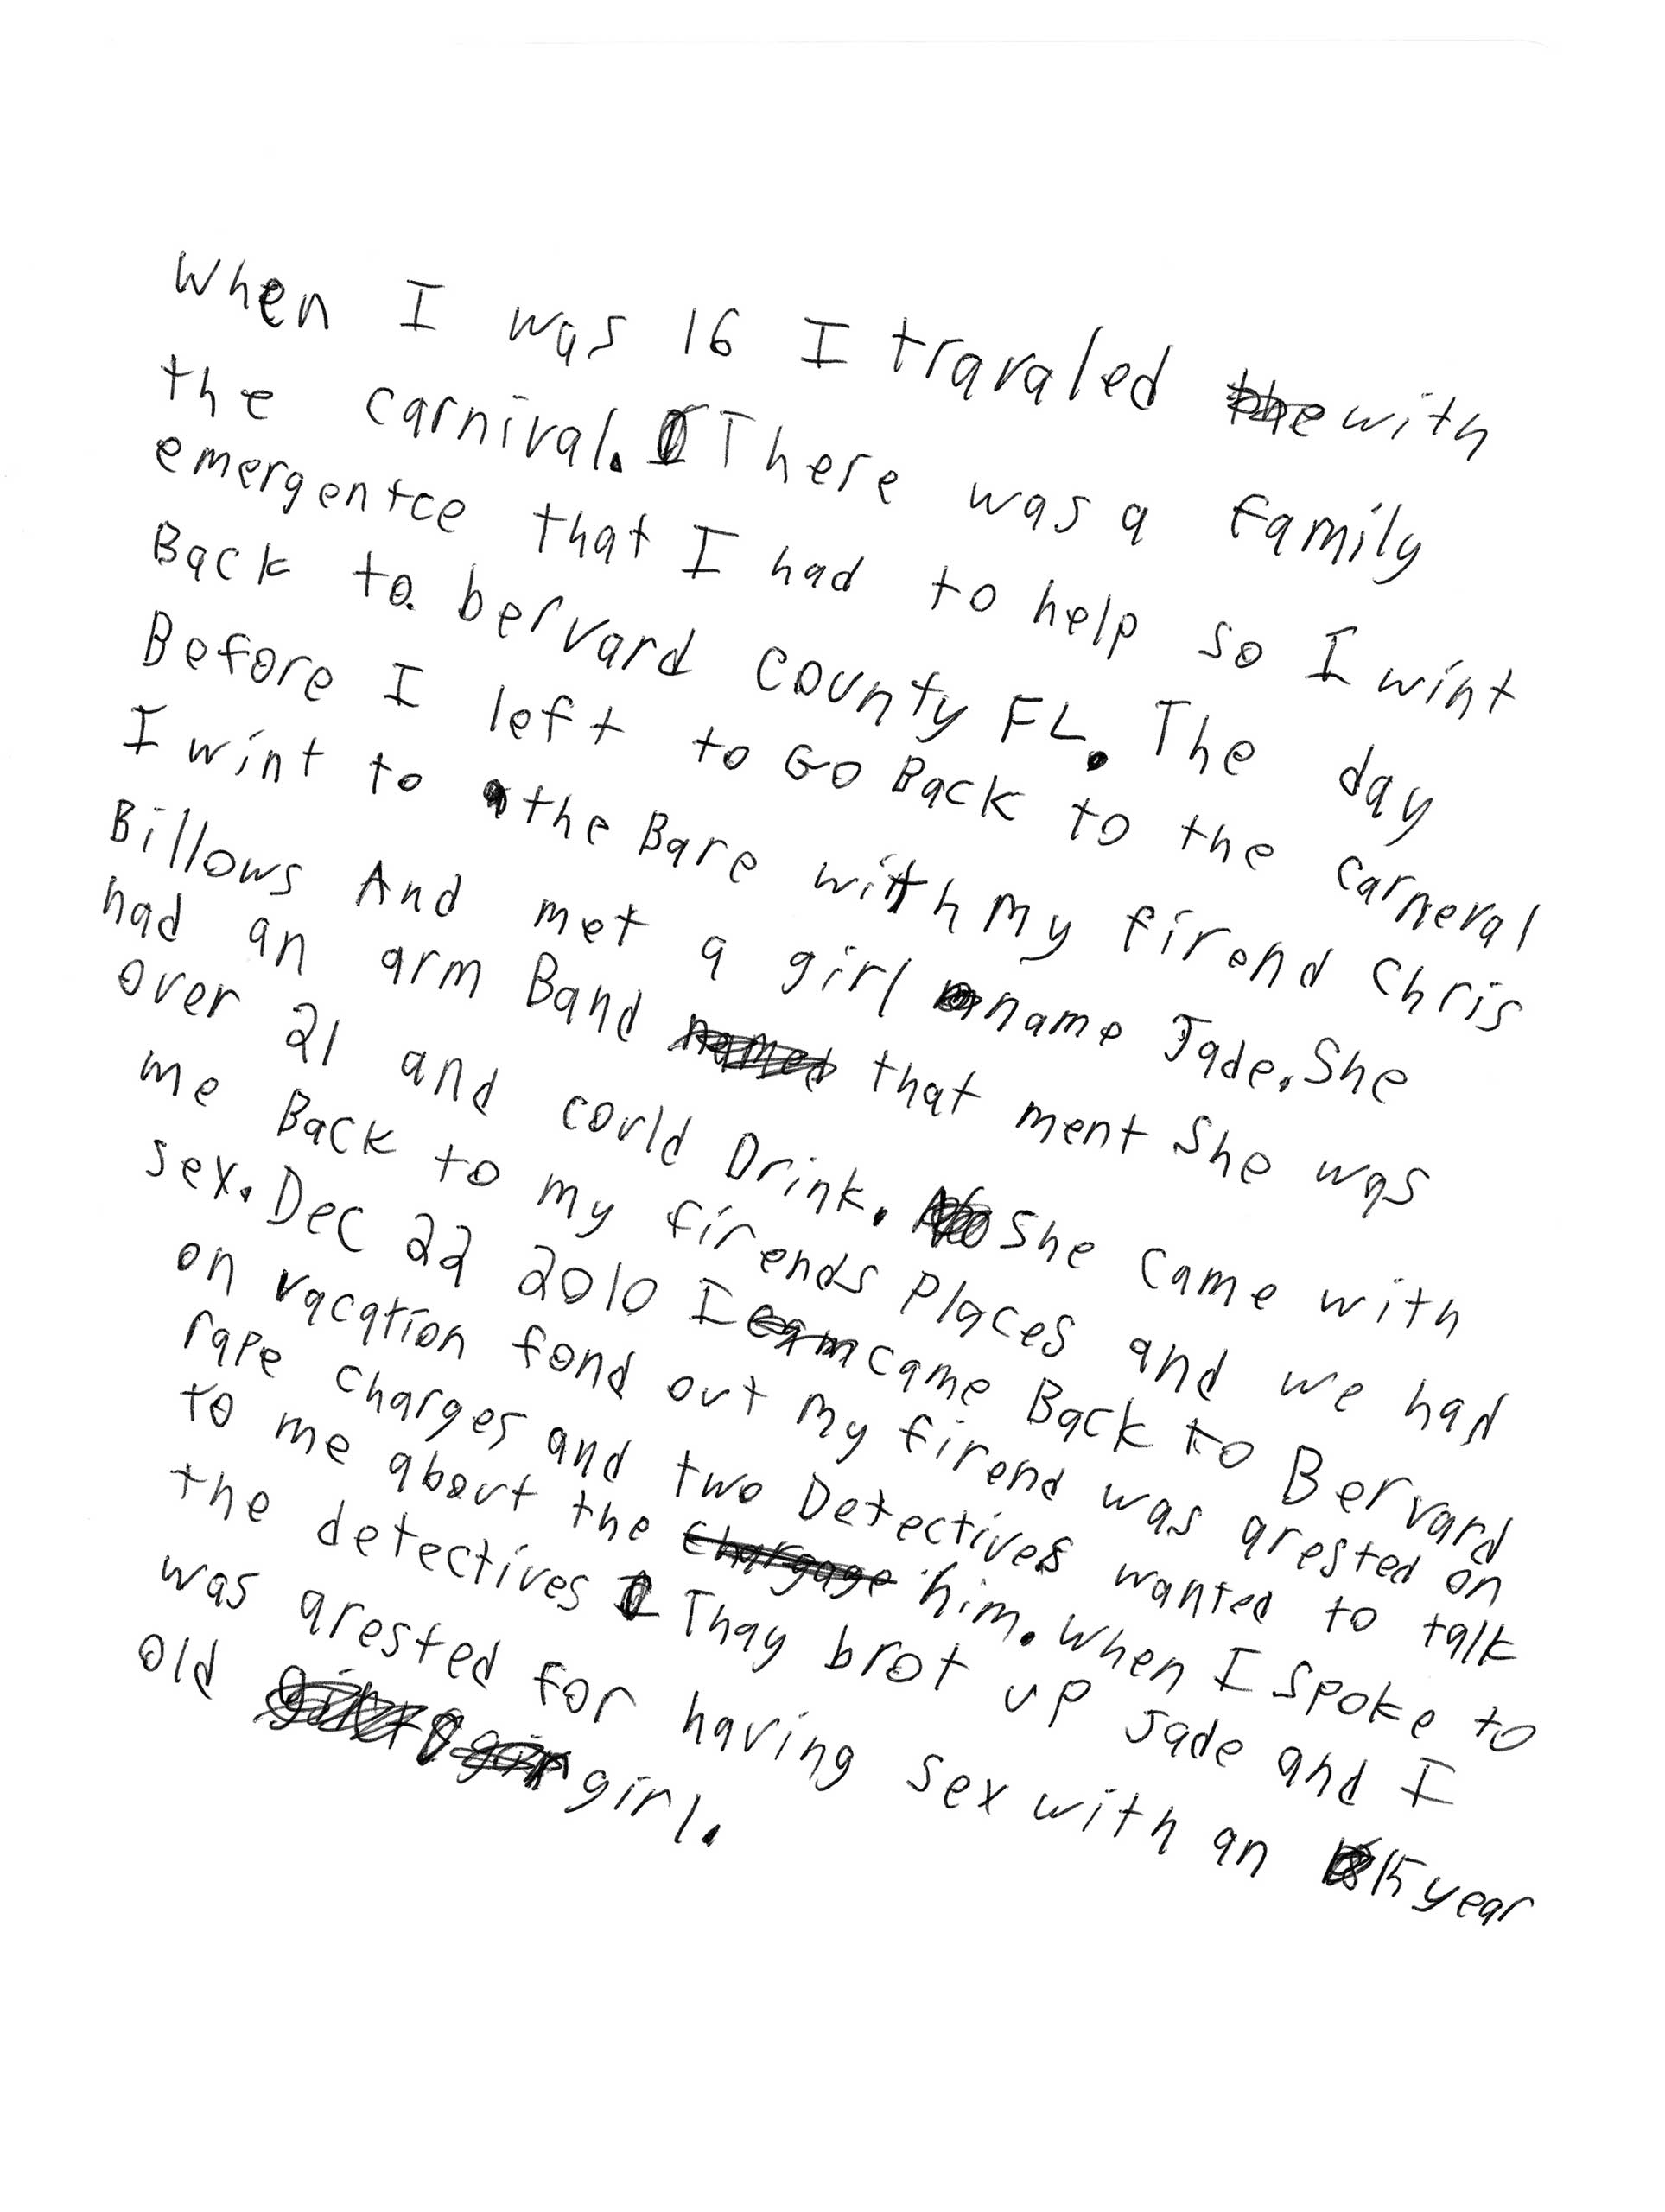 Handwritten letter from a resident of Miracle Village